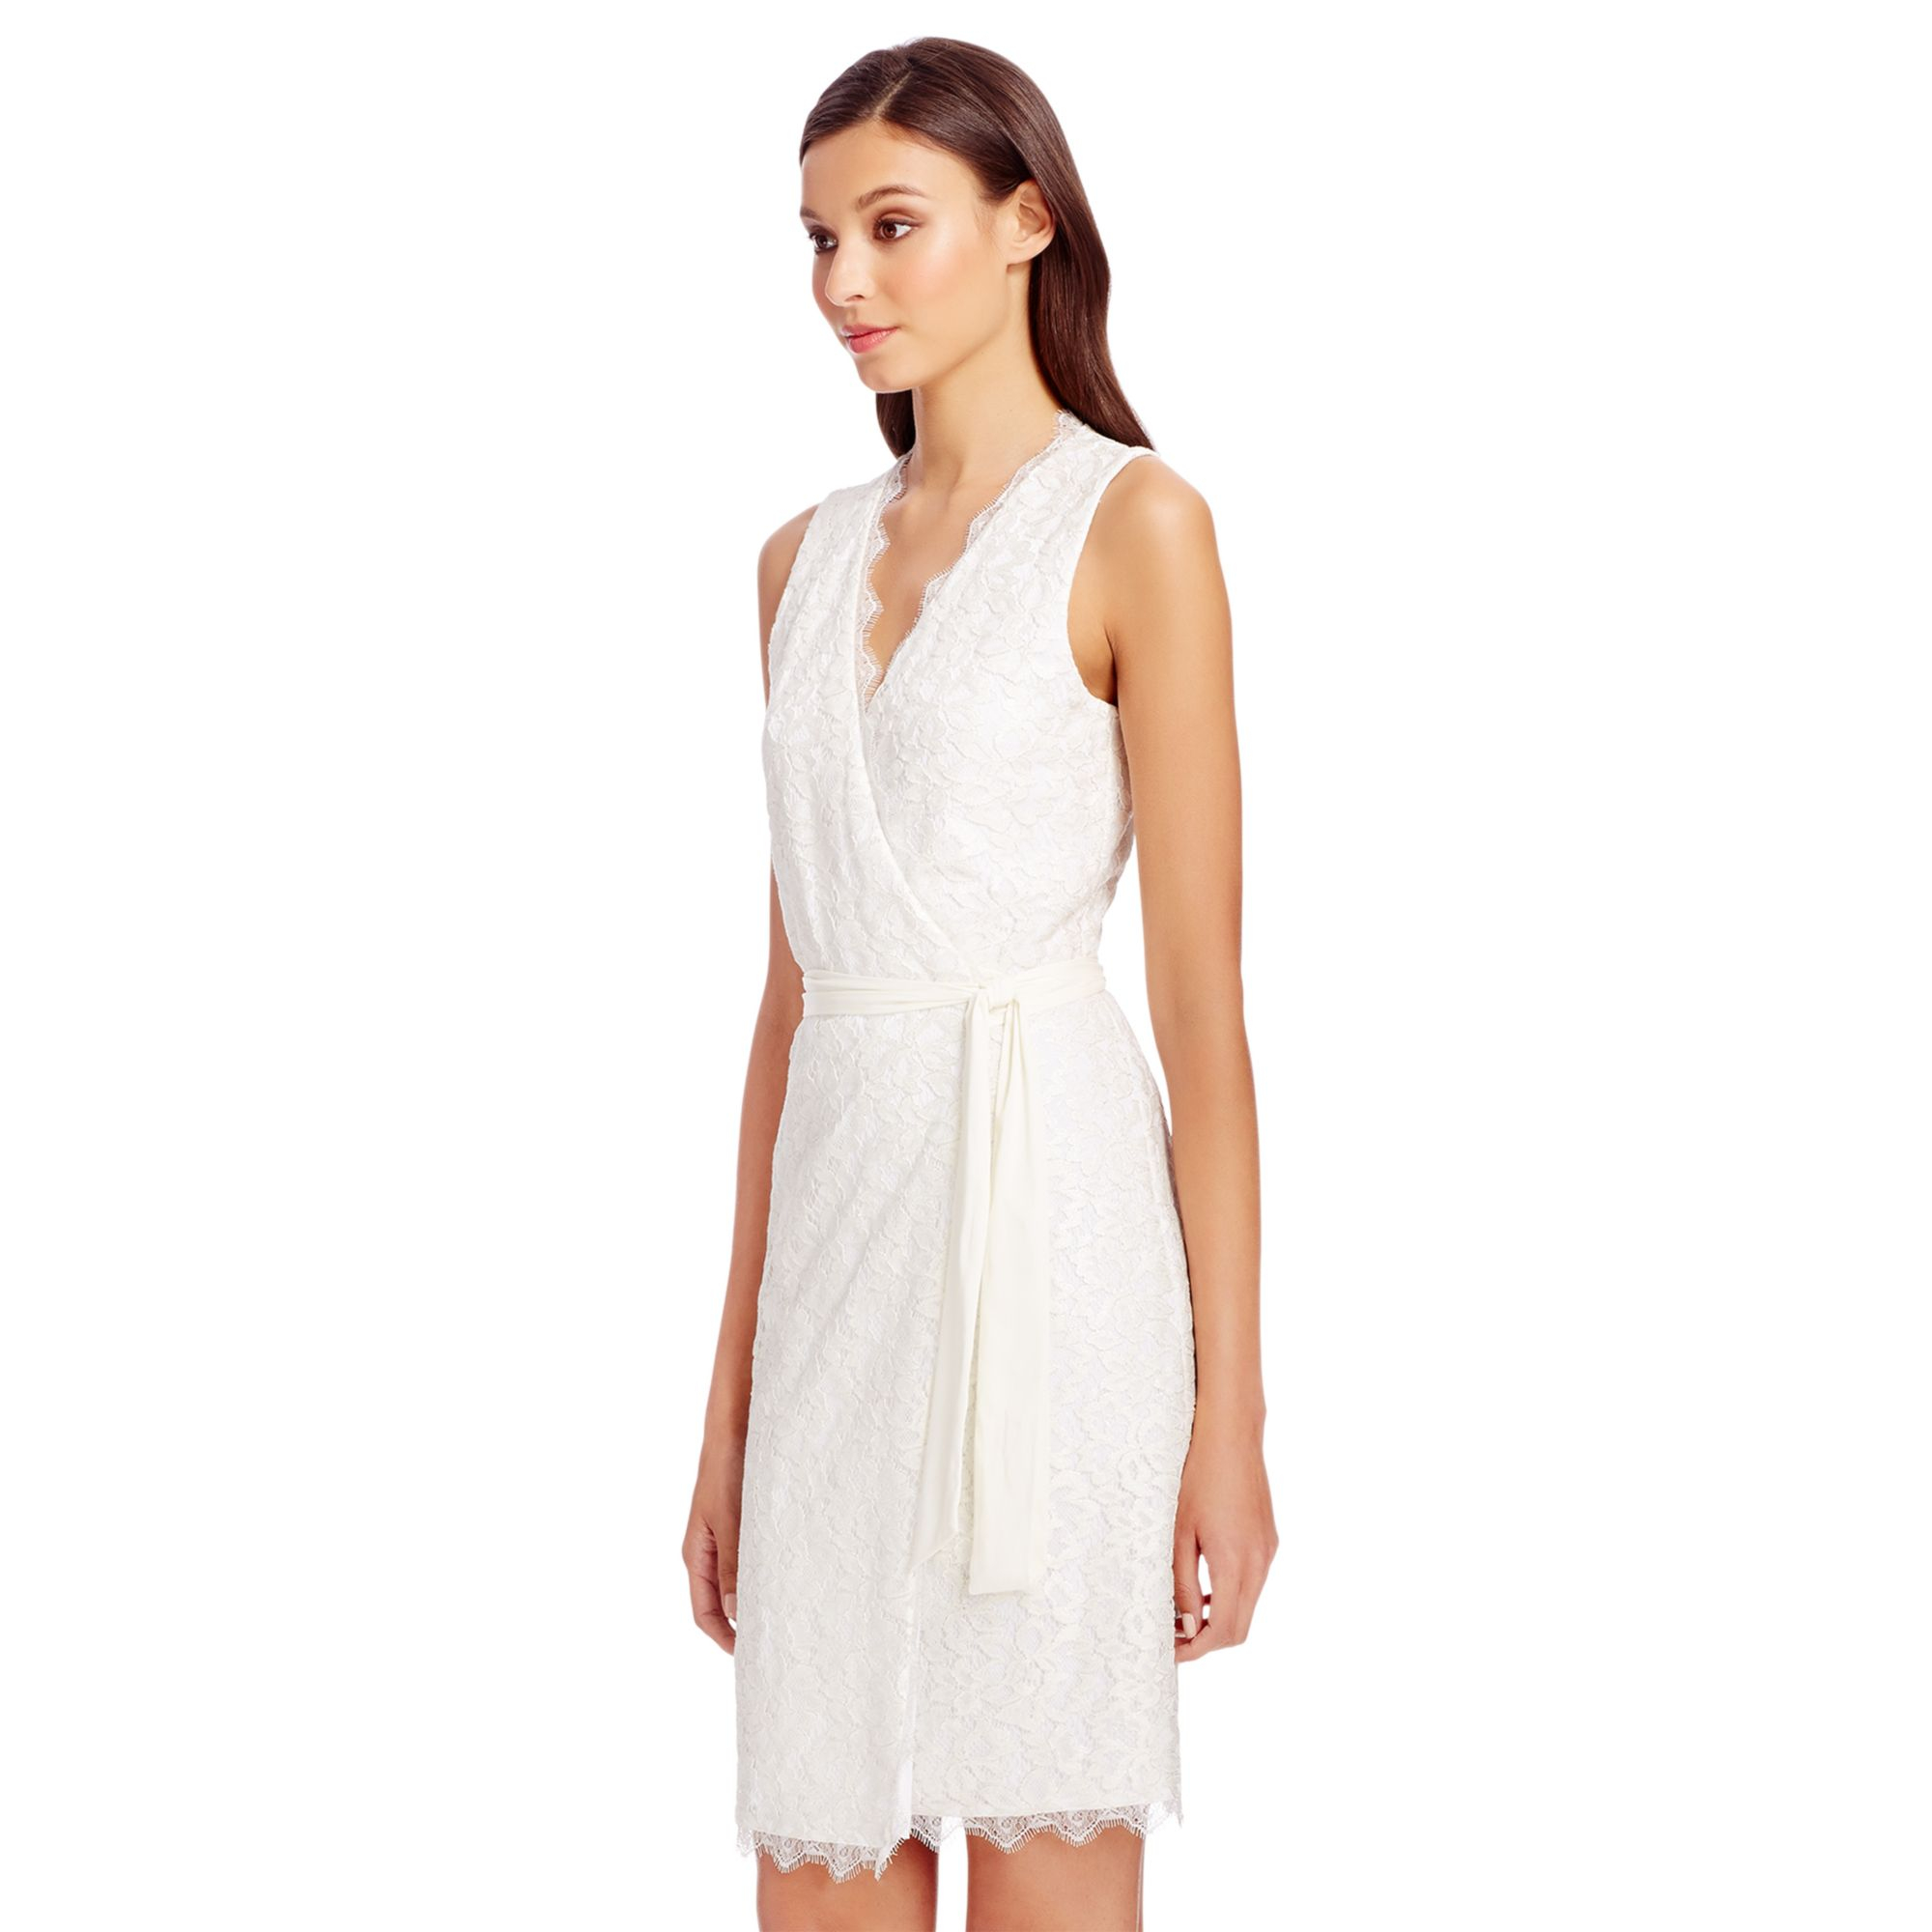 Designer Dresses on Sale - Wrap Dresses on Sale by DVF